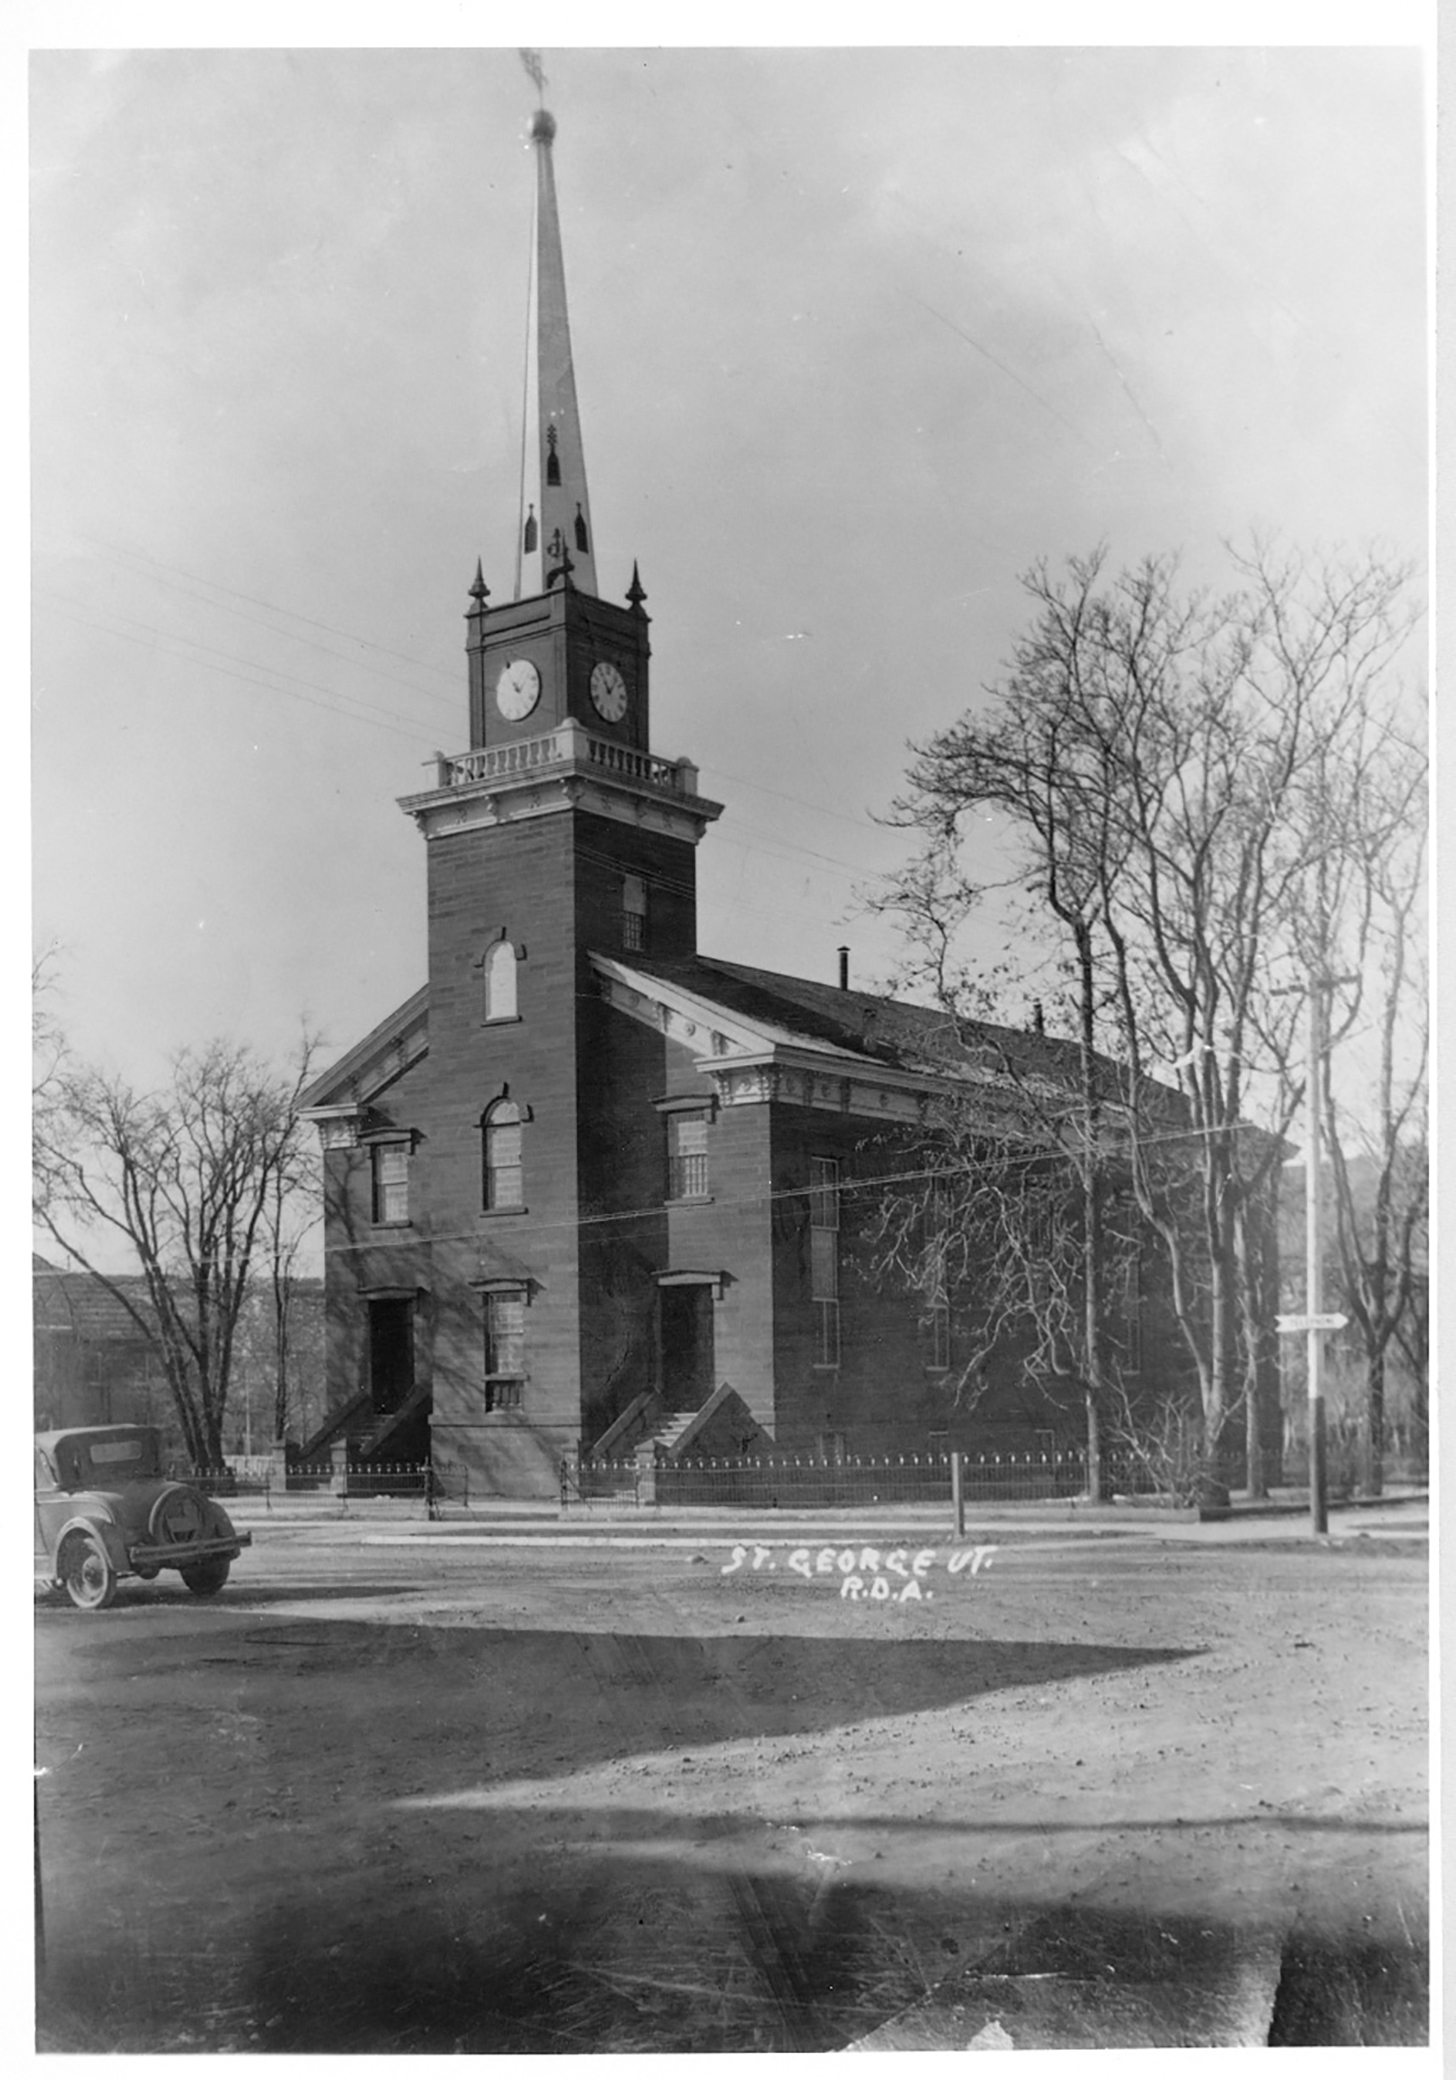 An historic photo of the Tabernacle from the 1930s, St. George, Utah, circa 1930 | Photo courtesy of The Church of Jesus Christ of Latter-day Saints, St. George News